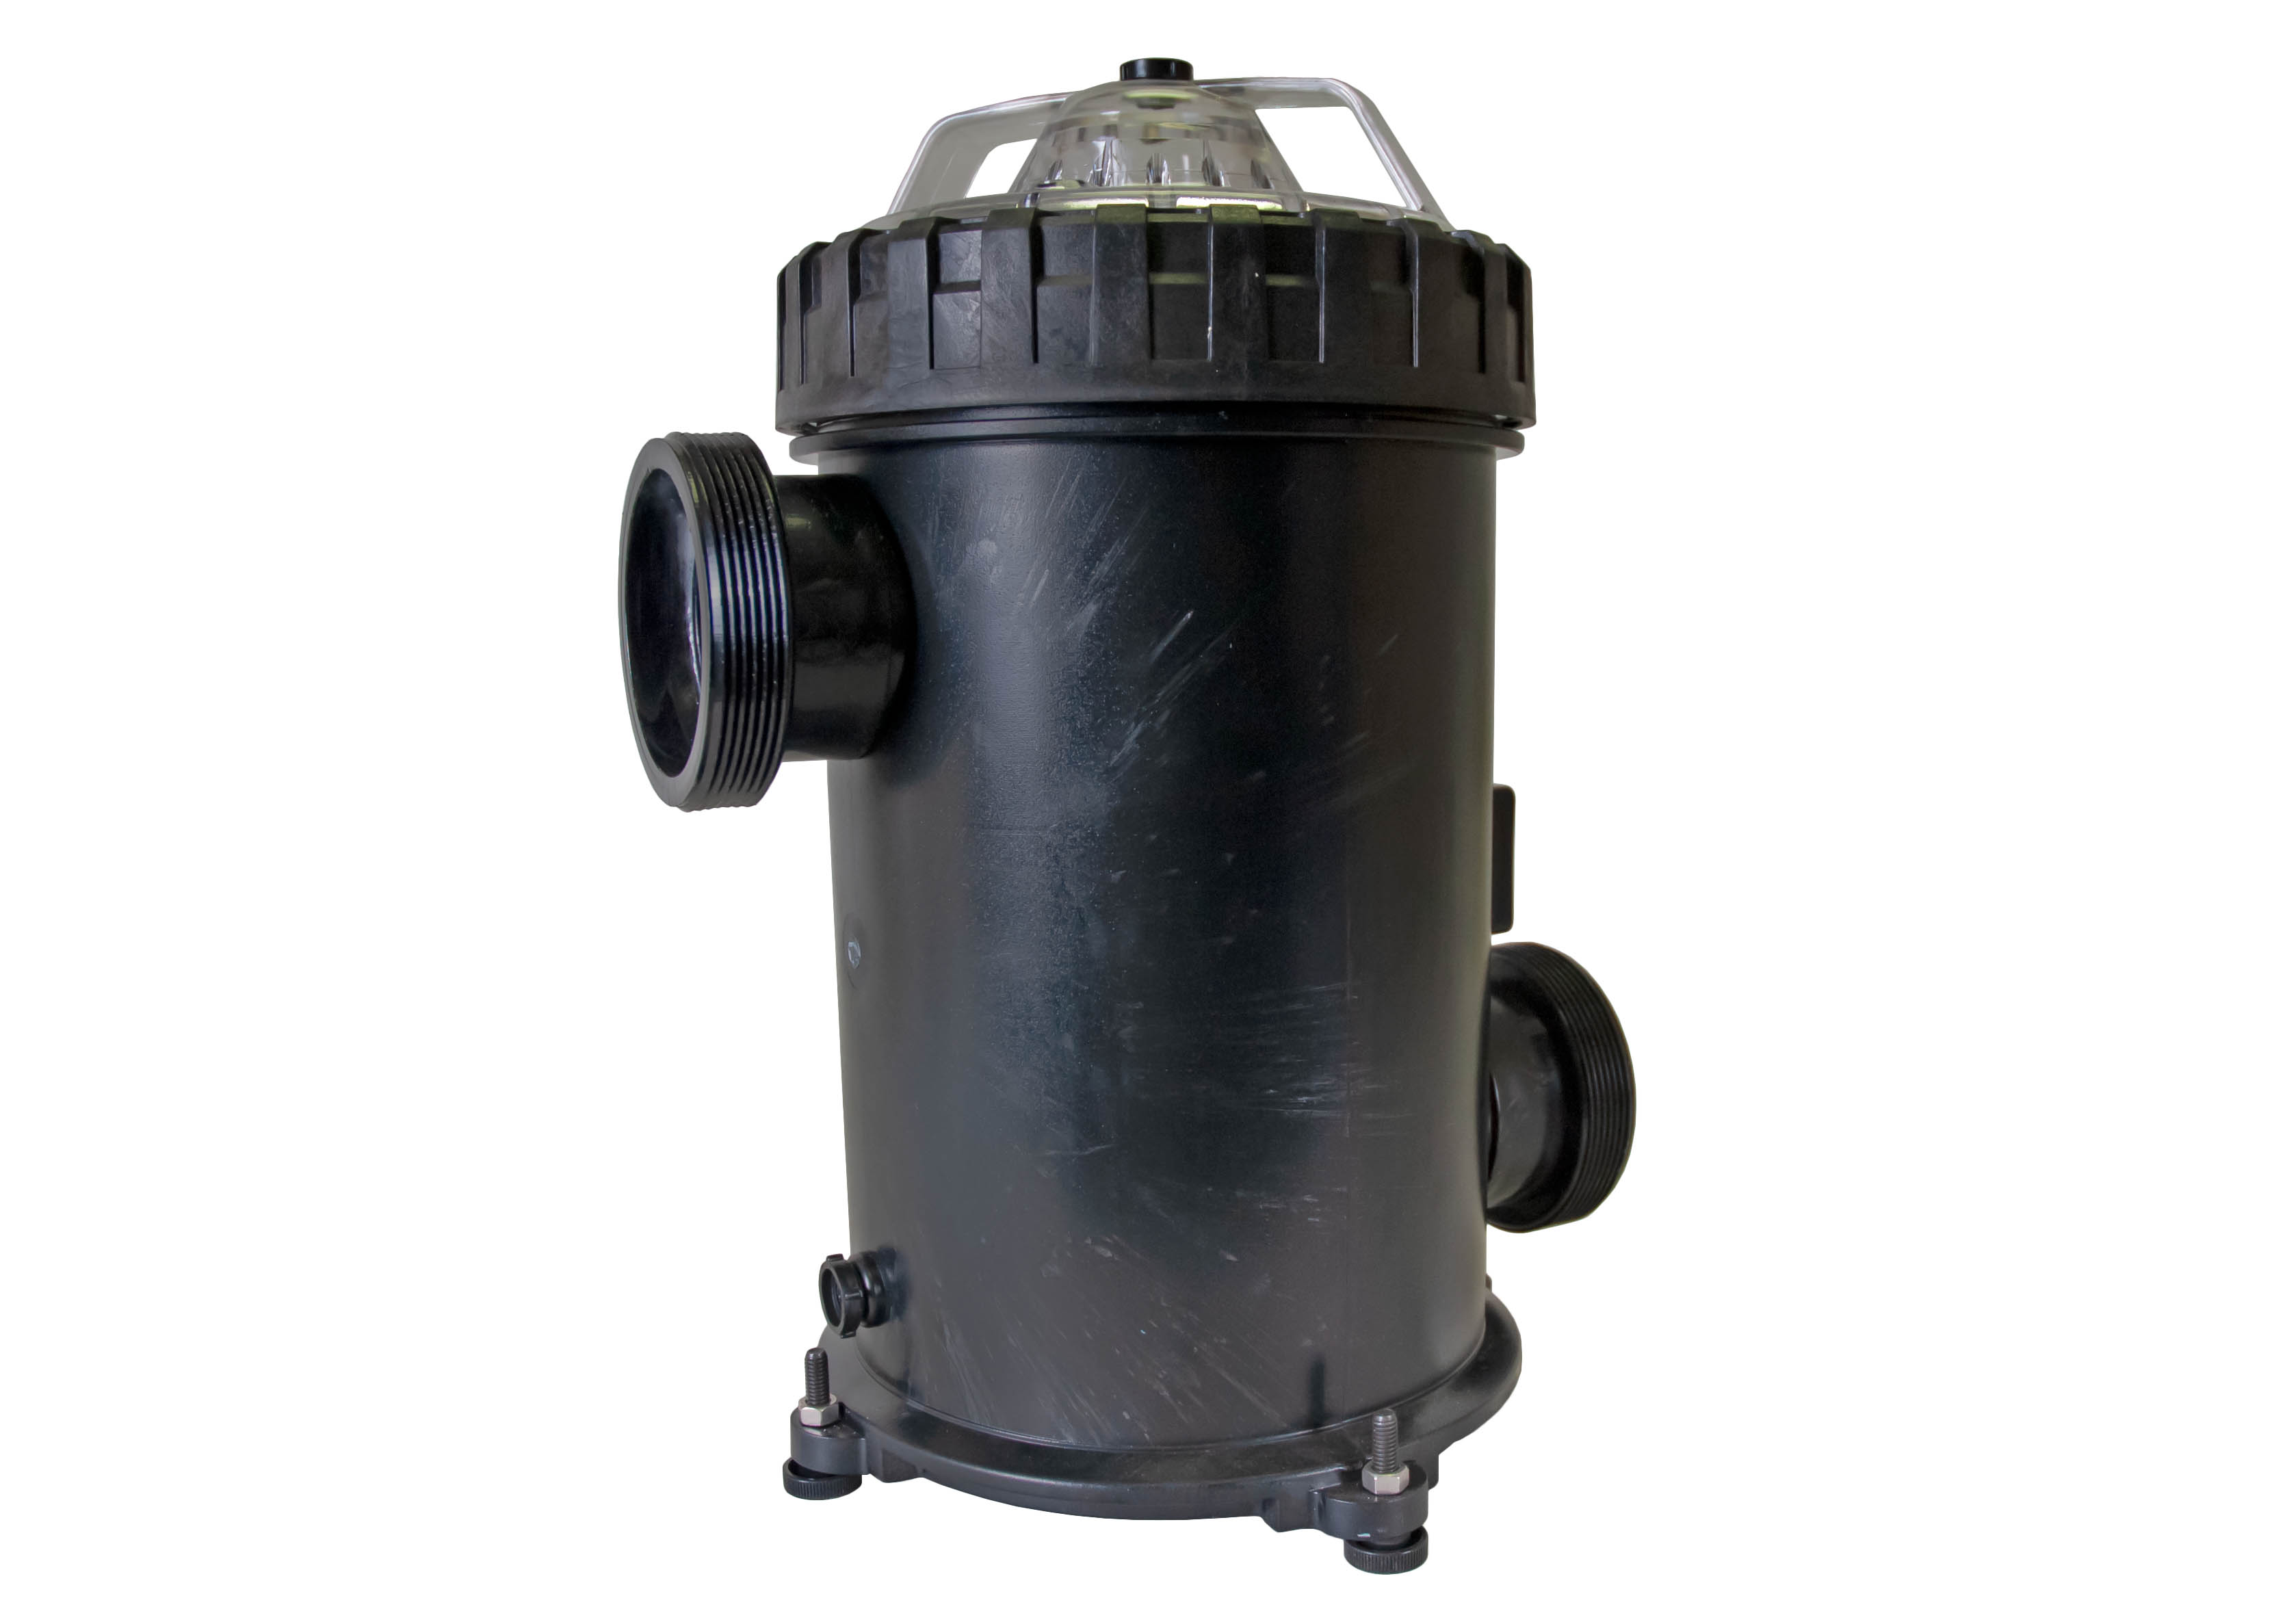 500 cubic liter Strainer Basket with 3 inch ports right angle view